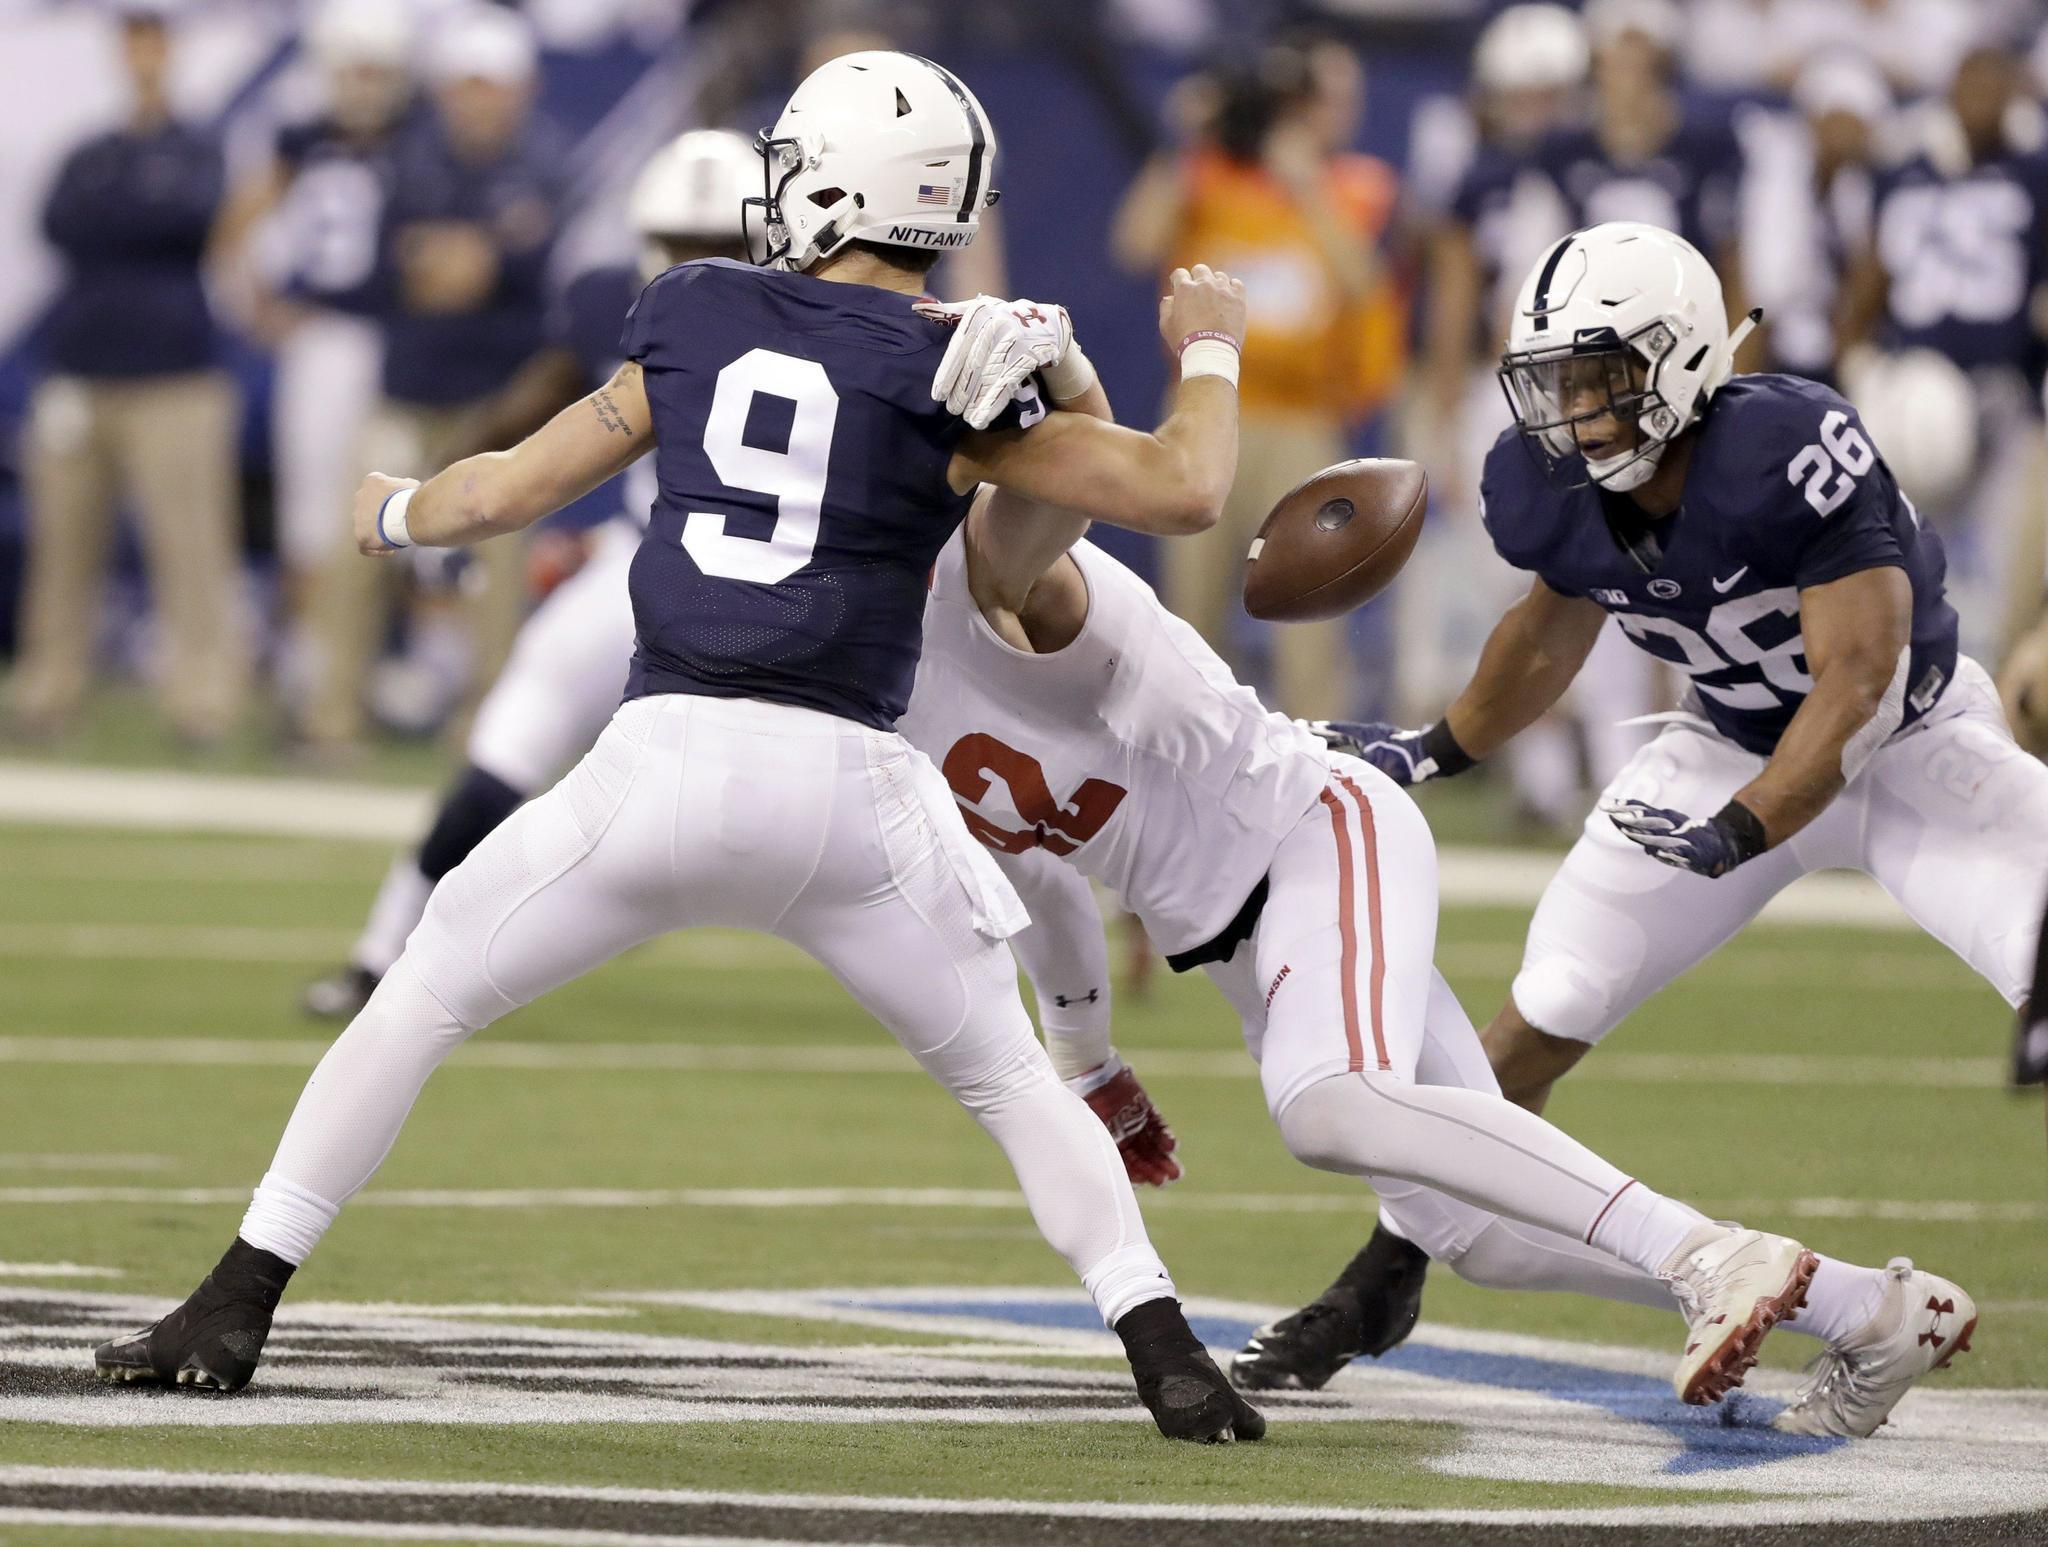 Mc-penn-state-football-trace-mcsorley-big-ten-20161204